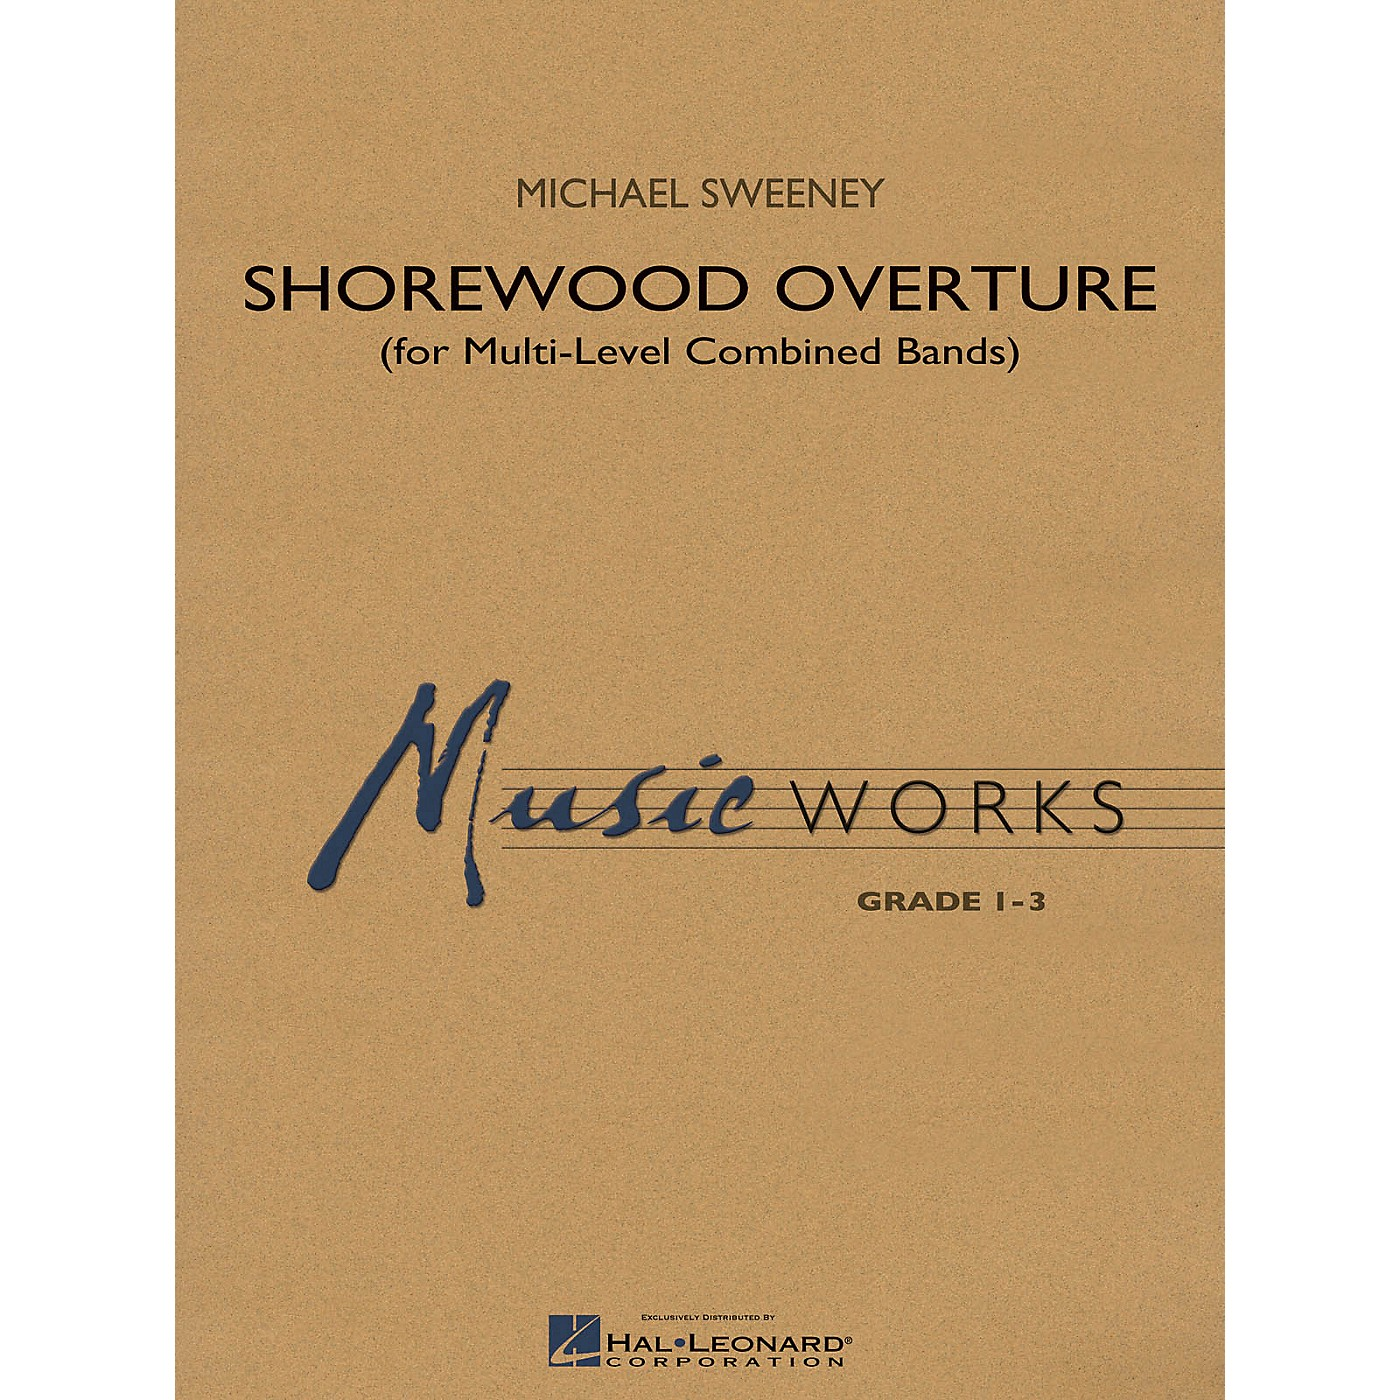 Hal Leonard Shorewood Overture (for Multi-level Combined Bands) Concert Band Level 2 Composed by Michael Sweeney thumbnail